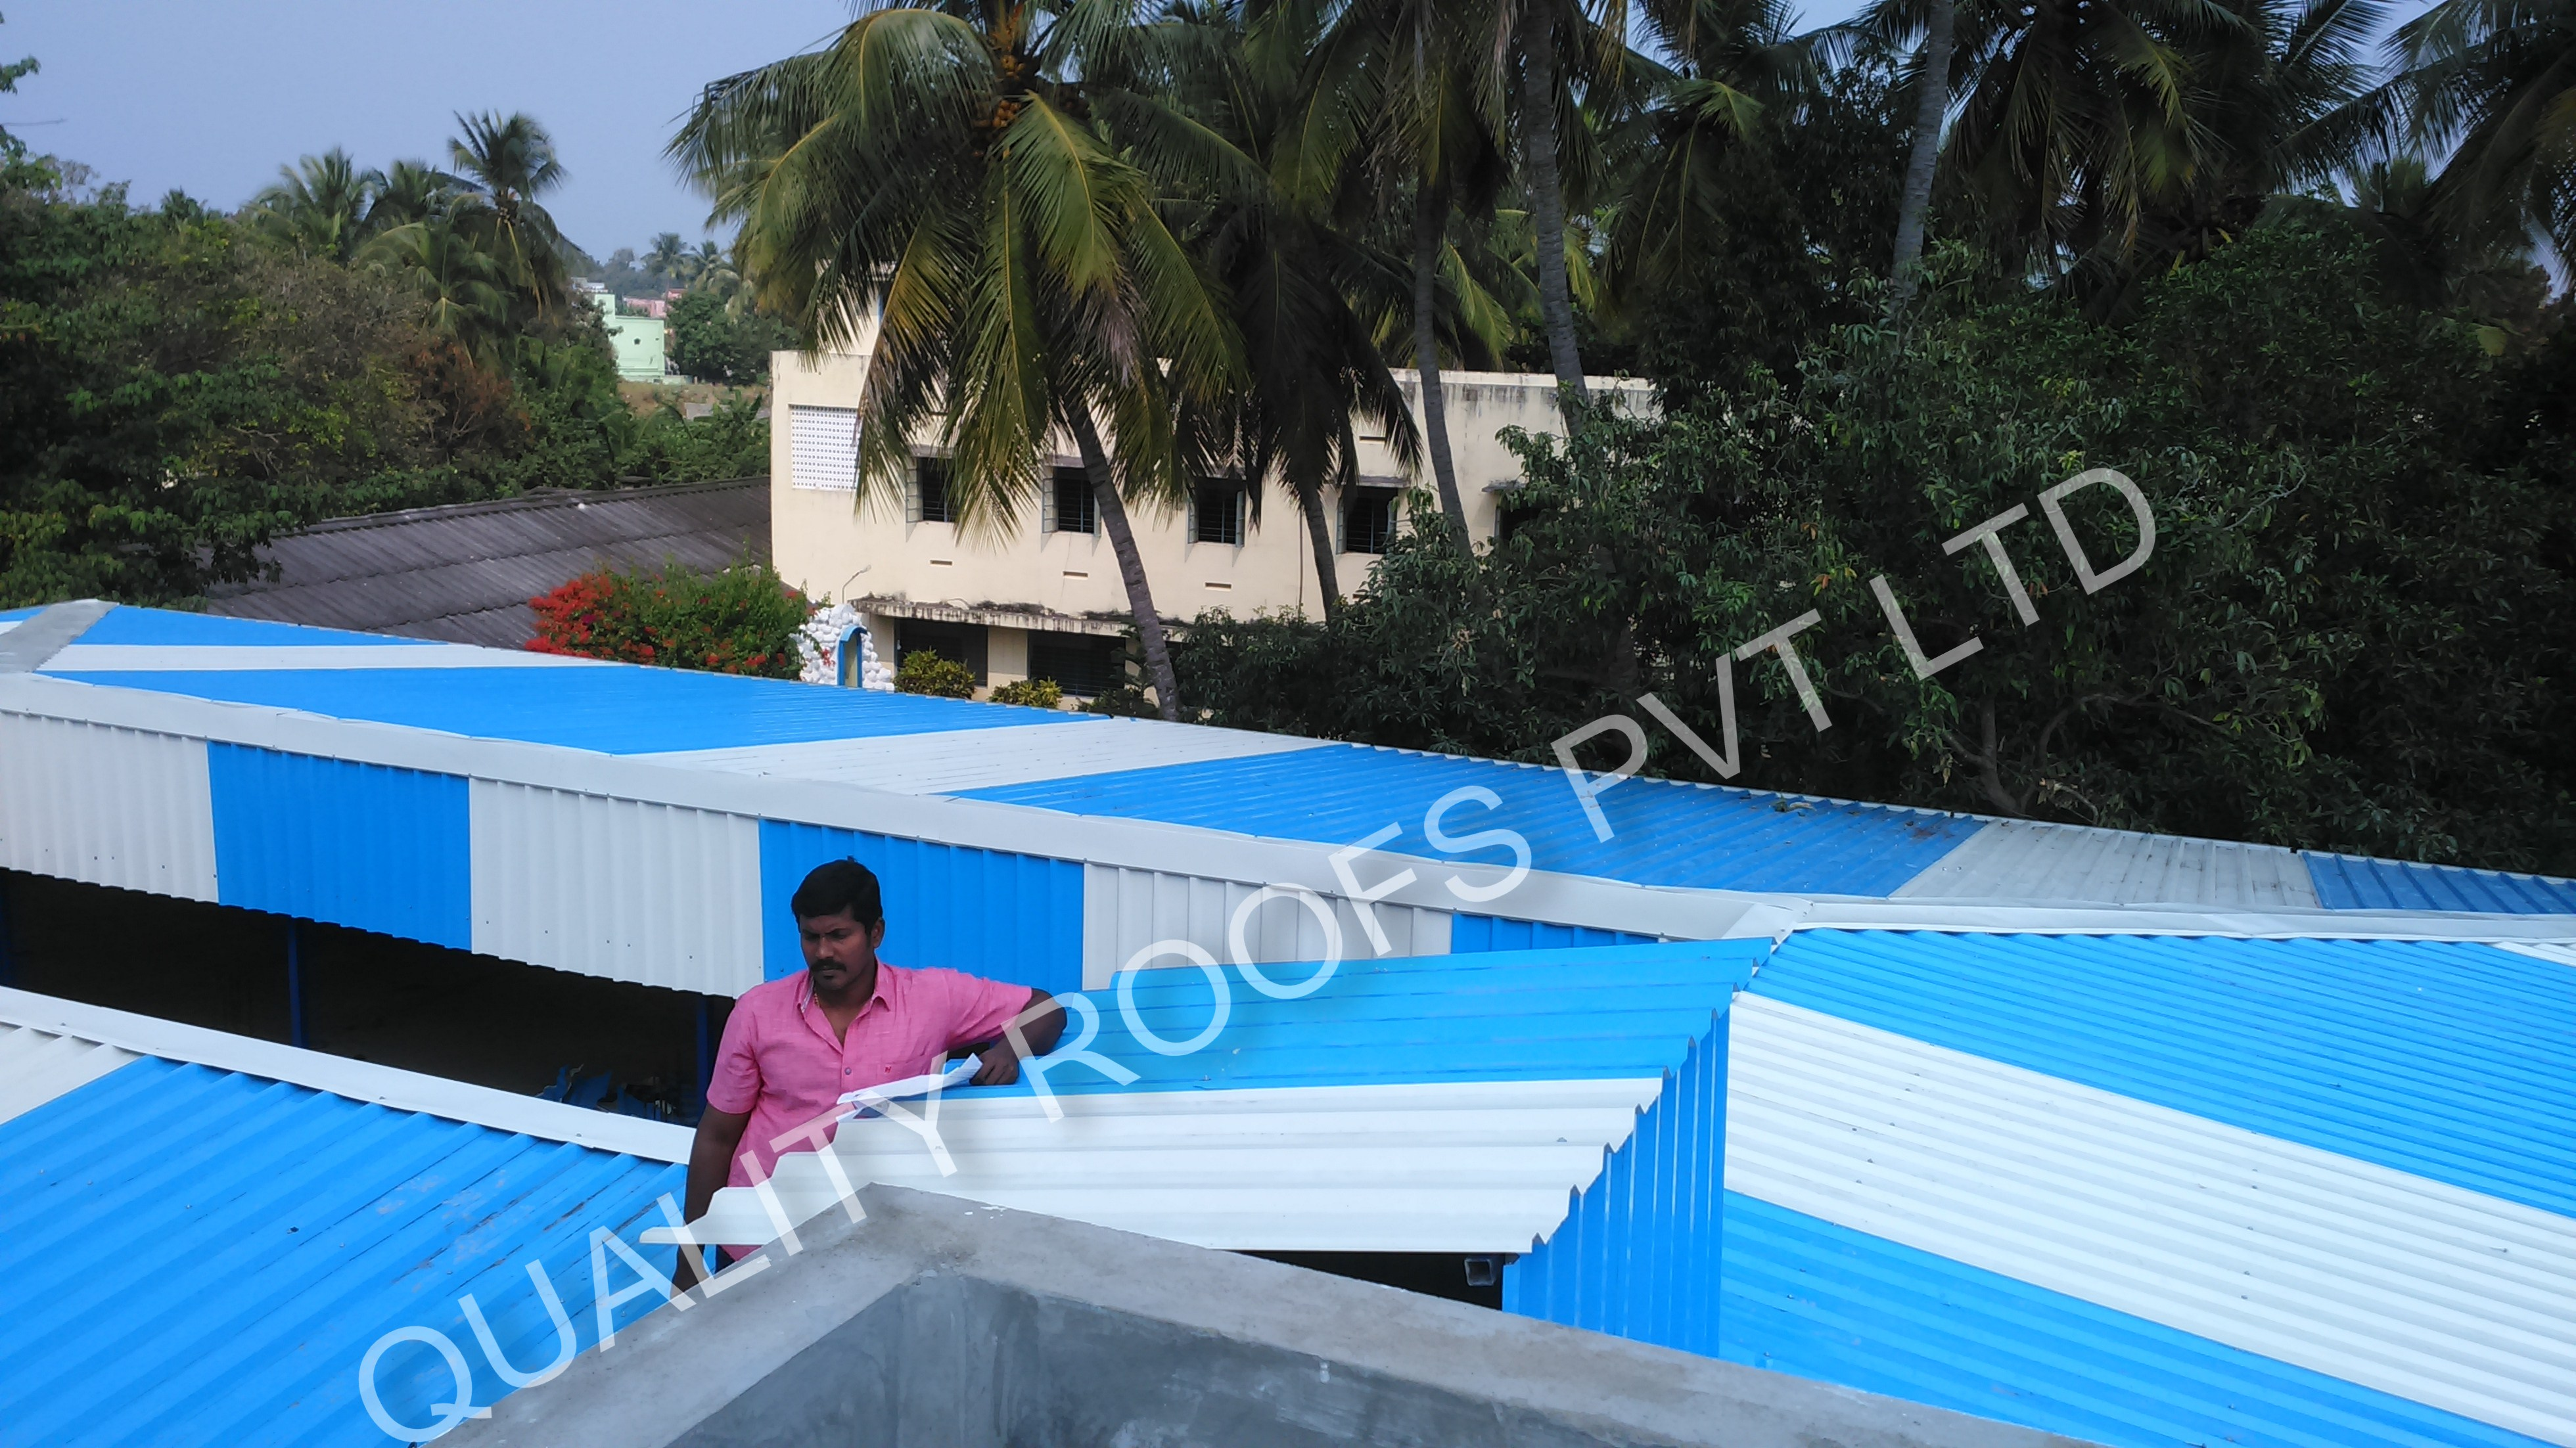 Residential Terrace Roofing In Chennai       We are indulged in providing Residential Roofing Work to our esteemed customers. These Residential Terraec Roofing In Chennai services are executed keeping the budget and preferences of our customers in mind. To attain maximum client satisfaction, we deliver these services timely.       With our sound manufacturing facility, we also manufacture these roofing on custom basis. Available at industry leading prices, our range of Residential Roofing is appreciated for the following remarkable features